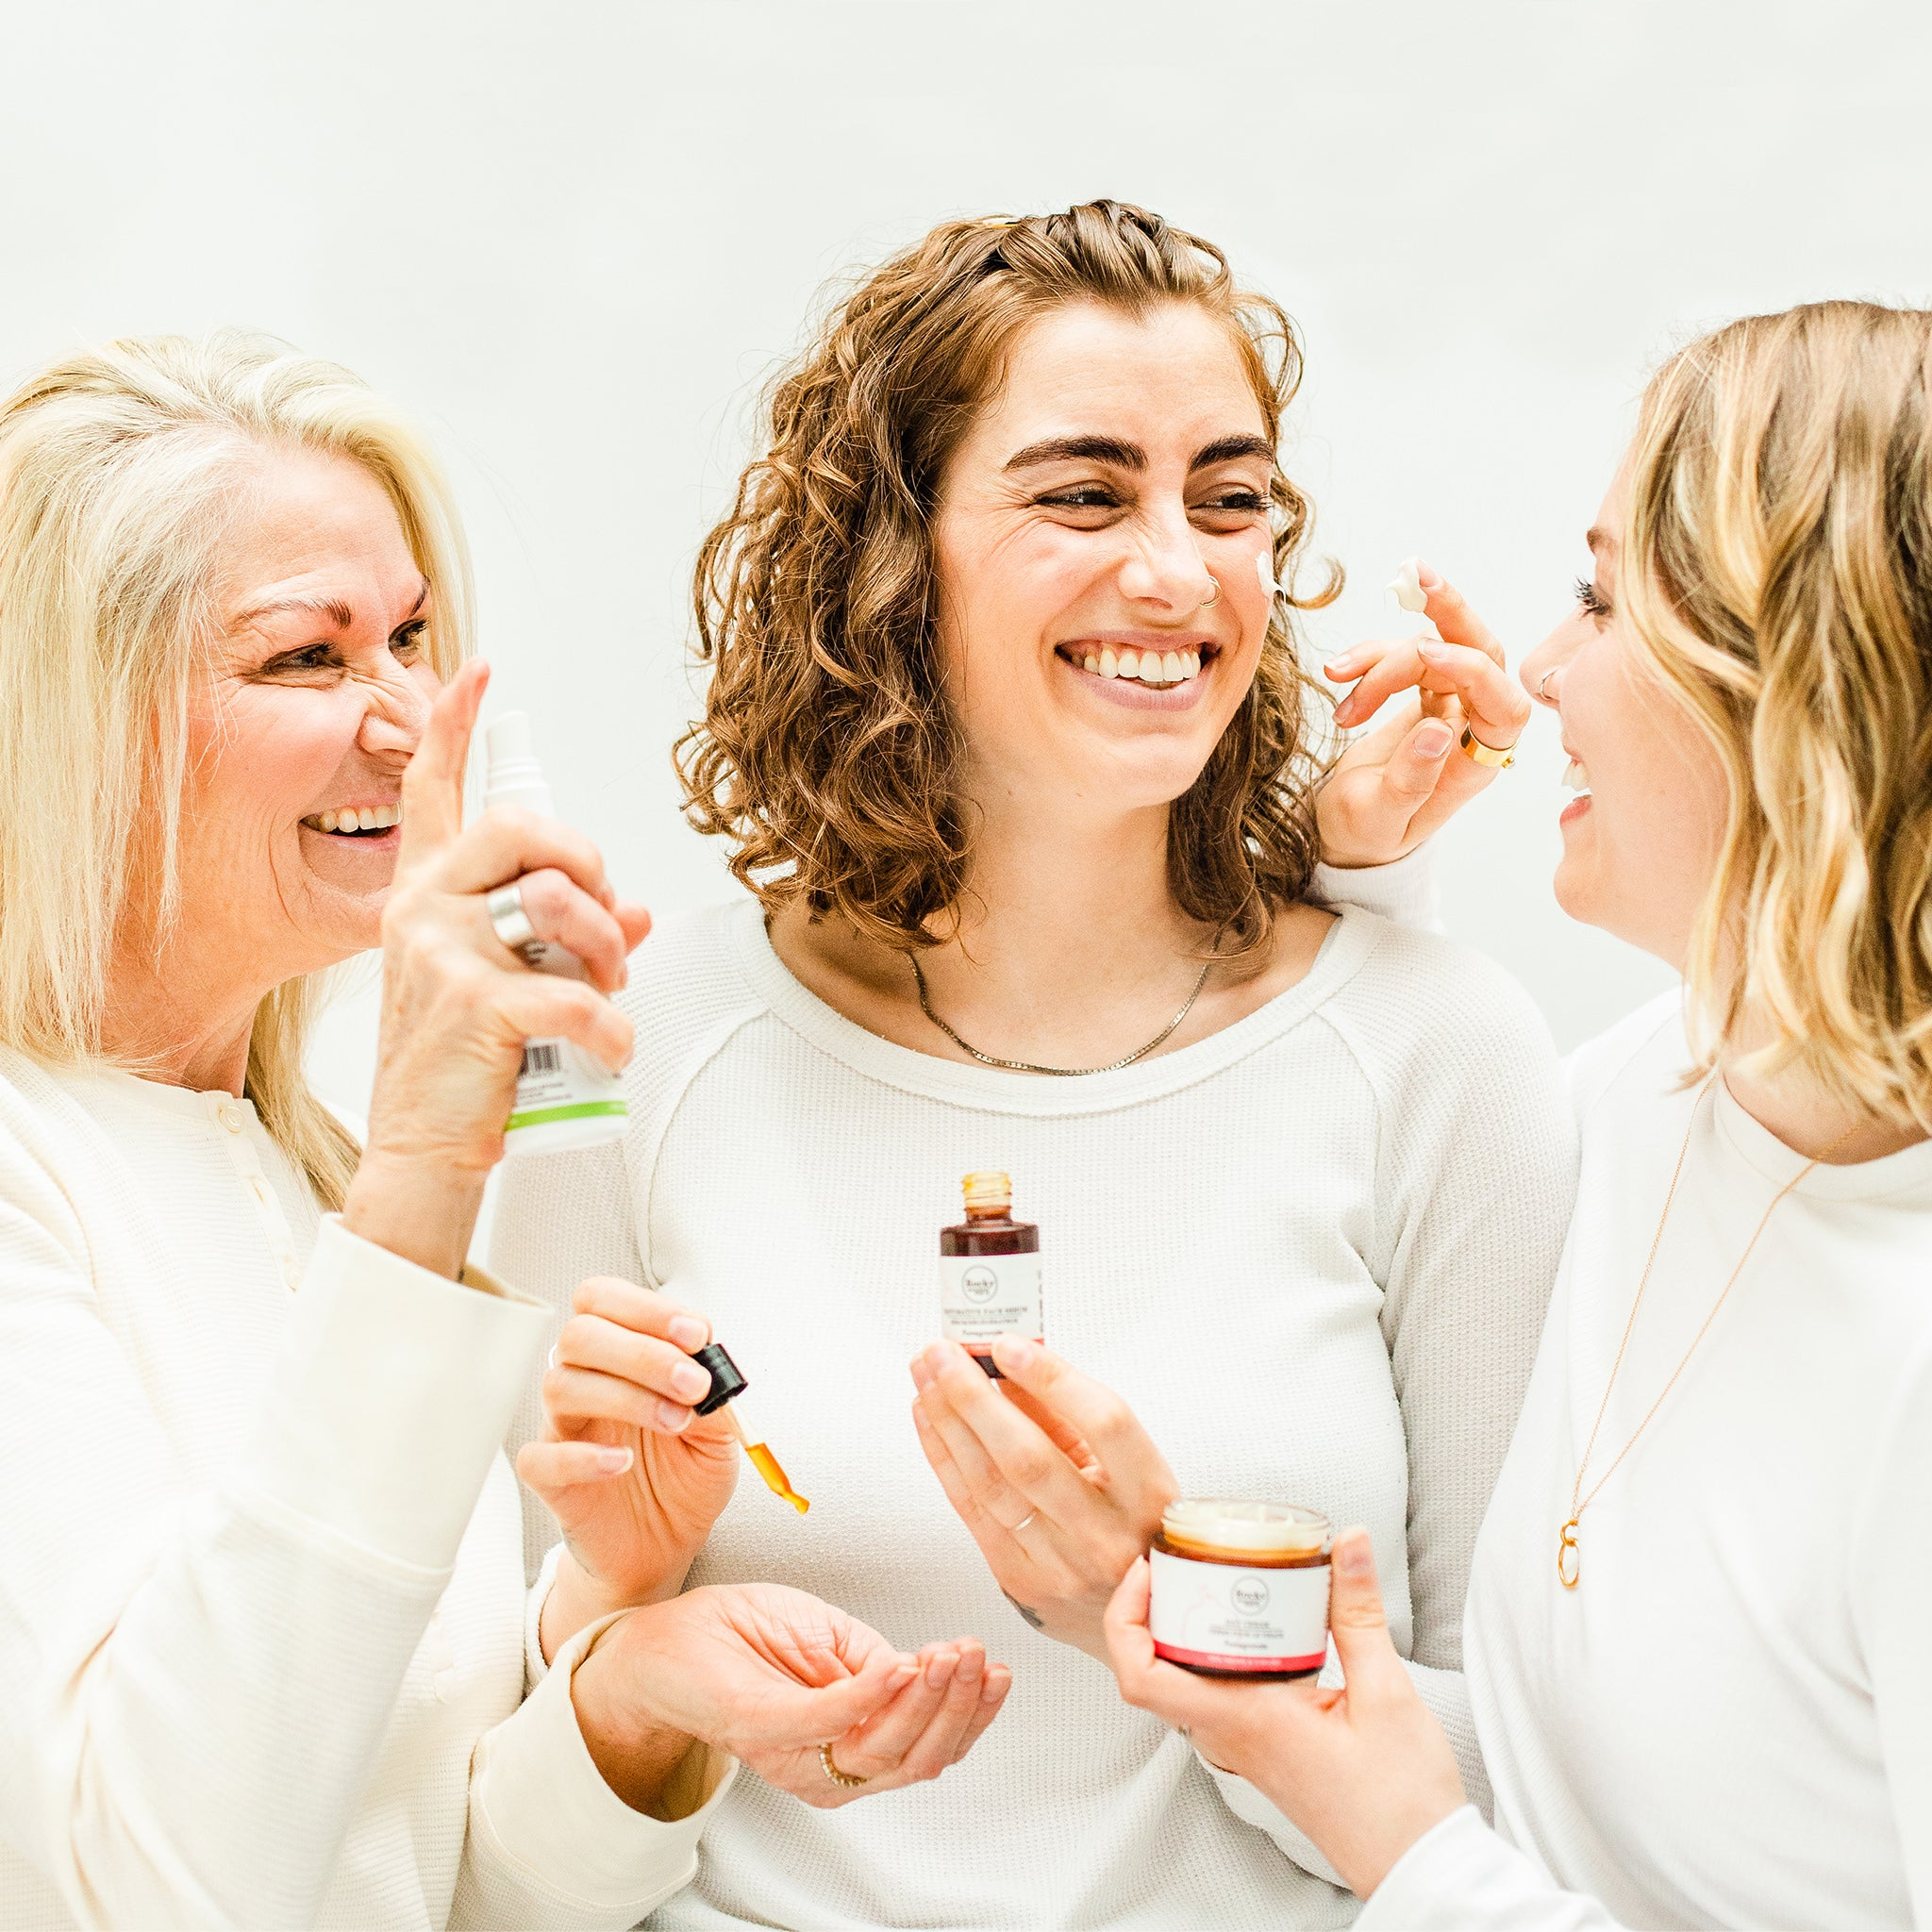 image of three women of different ages using skin care products.